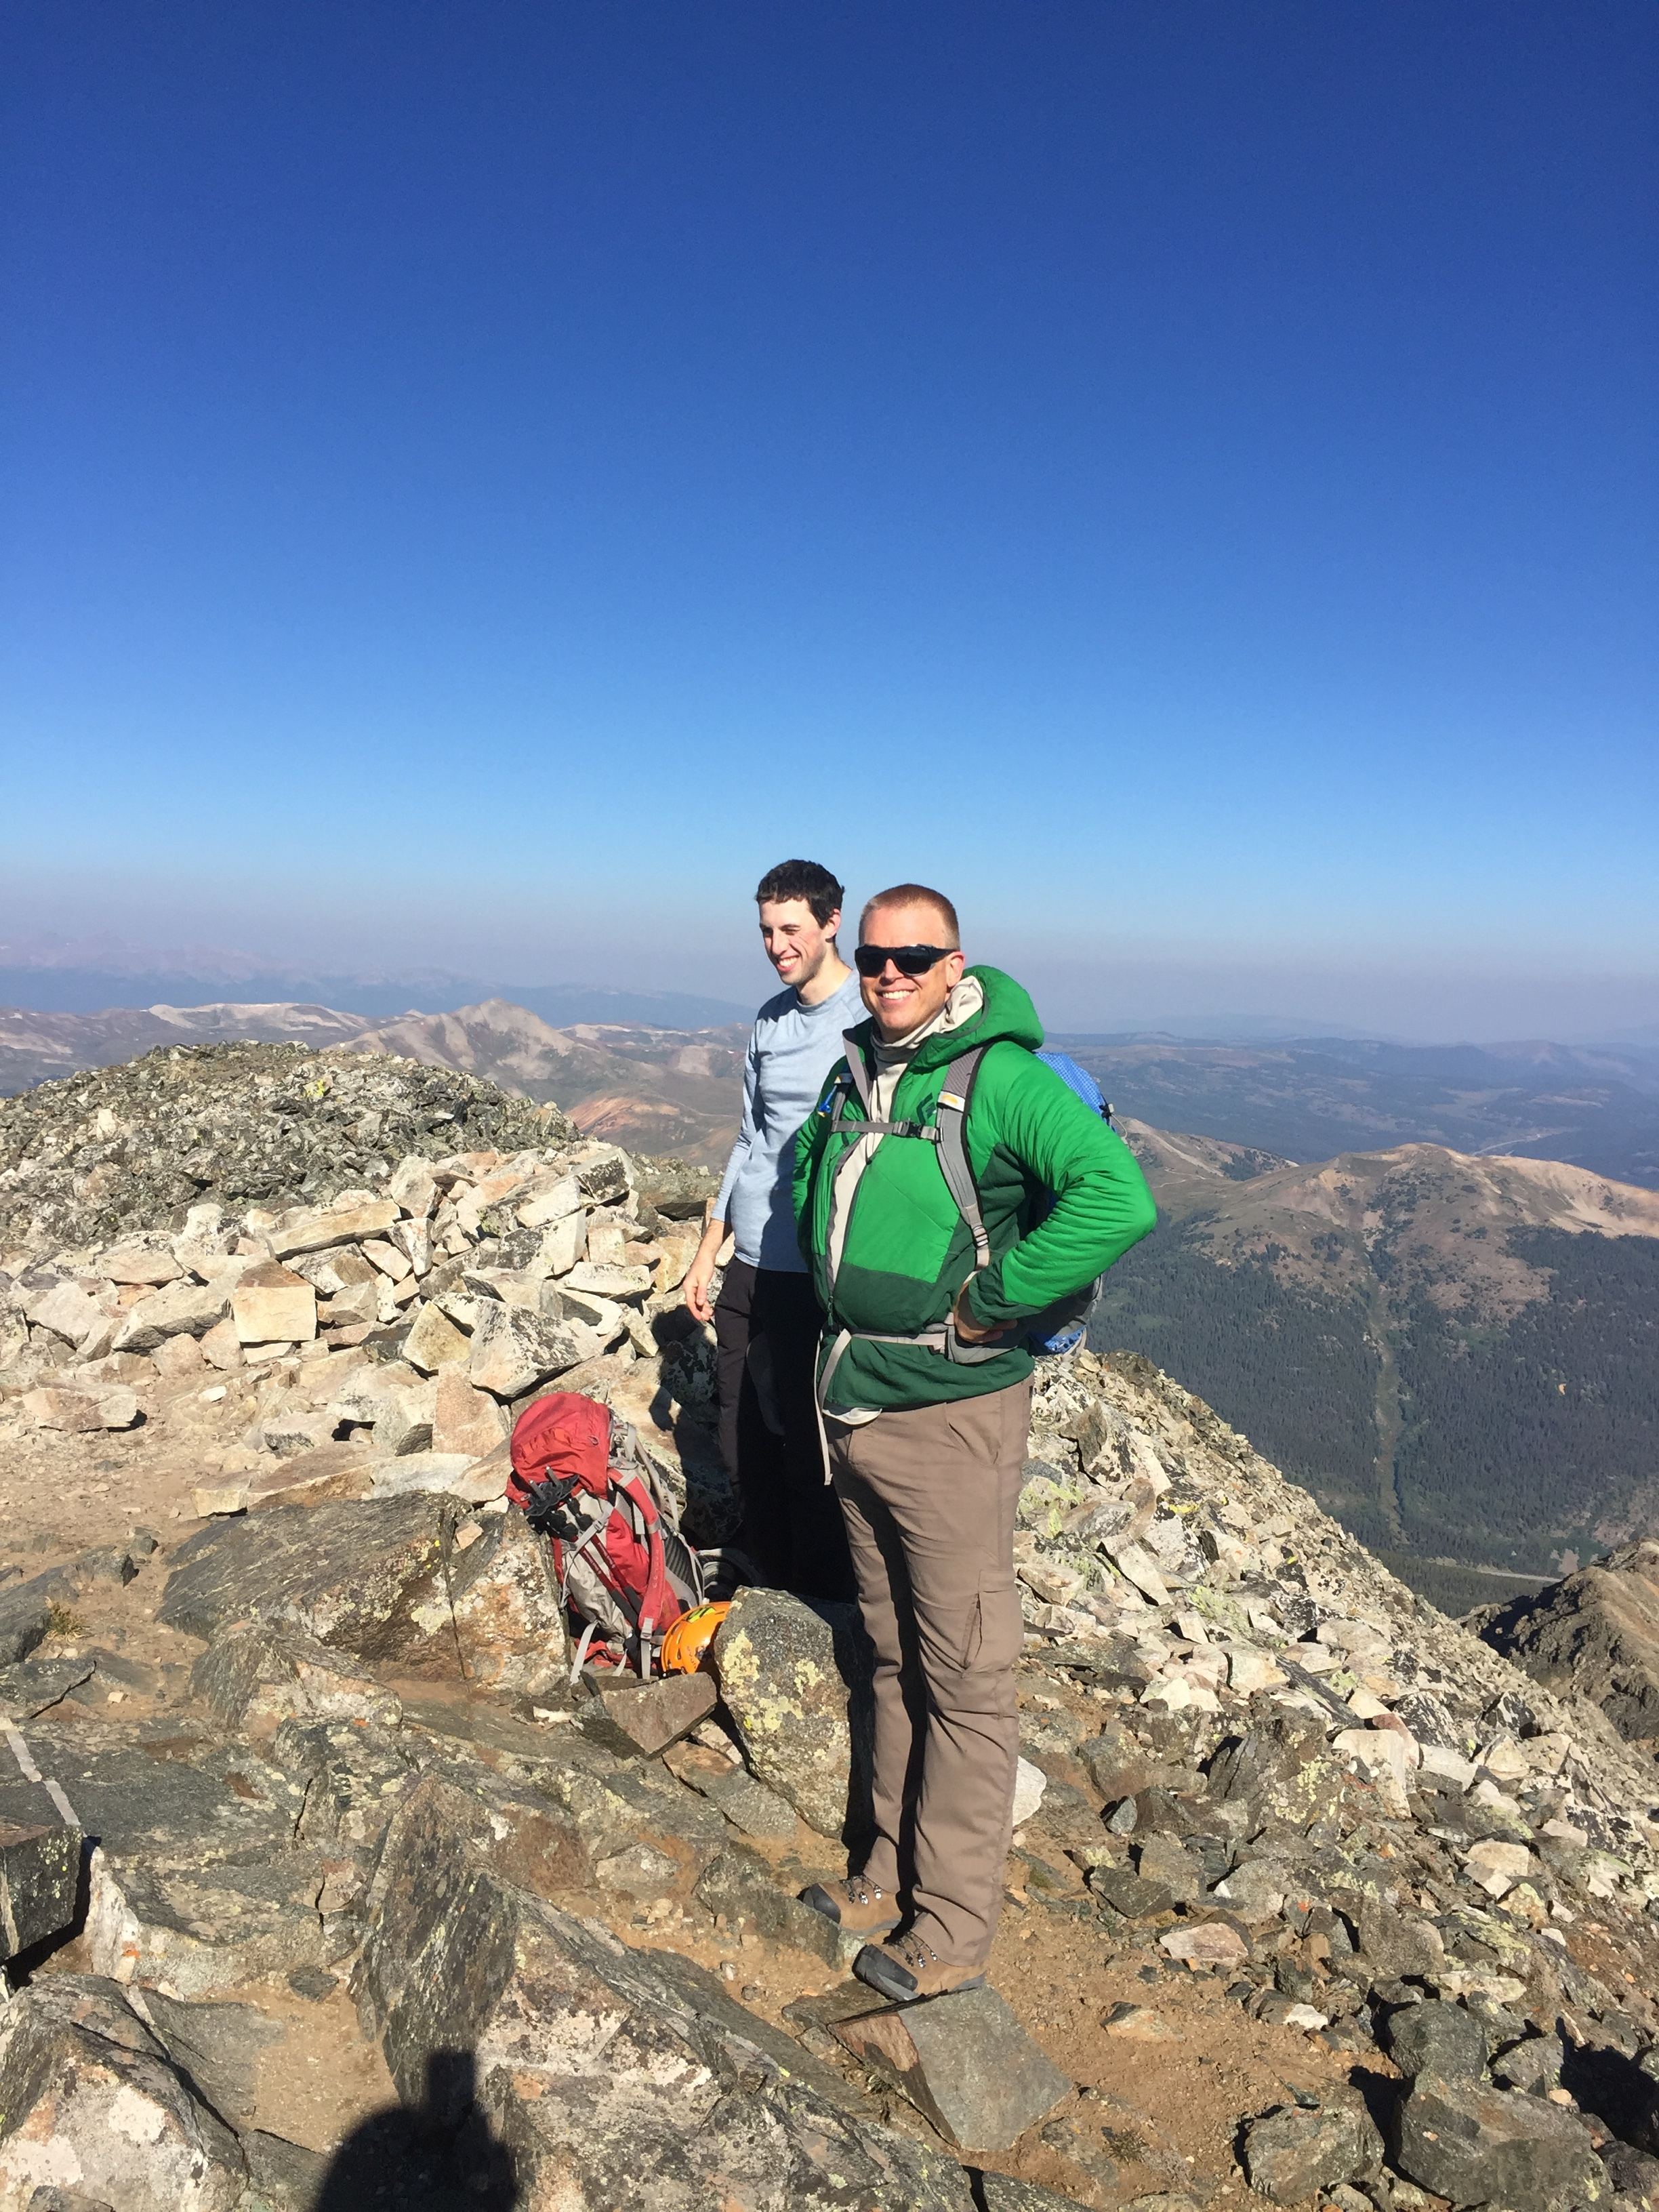 Paul and Owen on the summit of Crystal Peak (13,852'). Photo: Jim Hasse